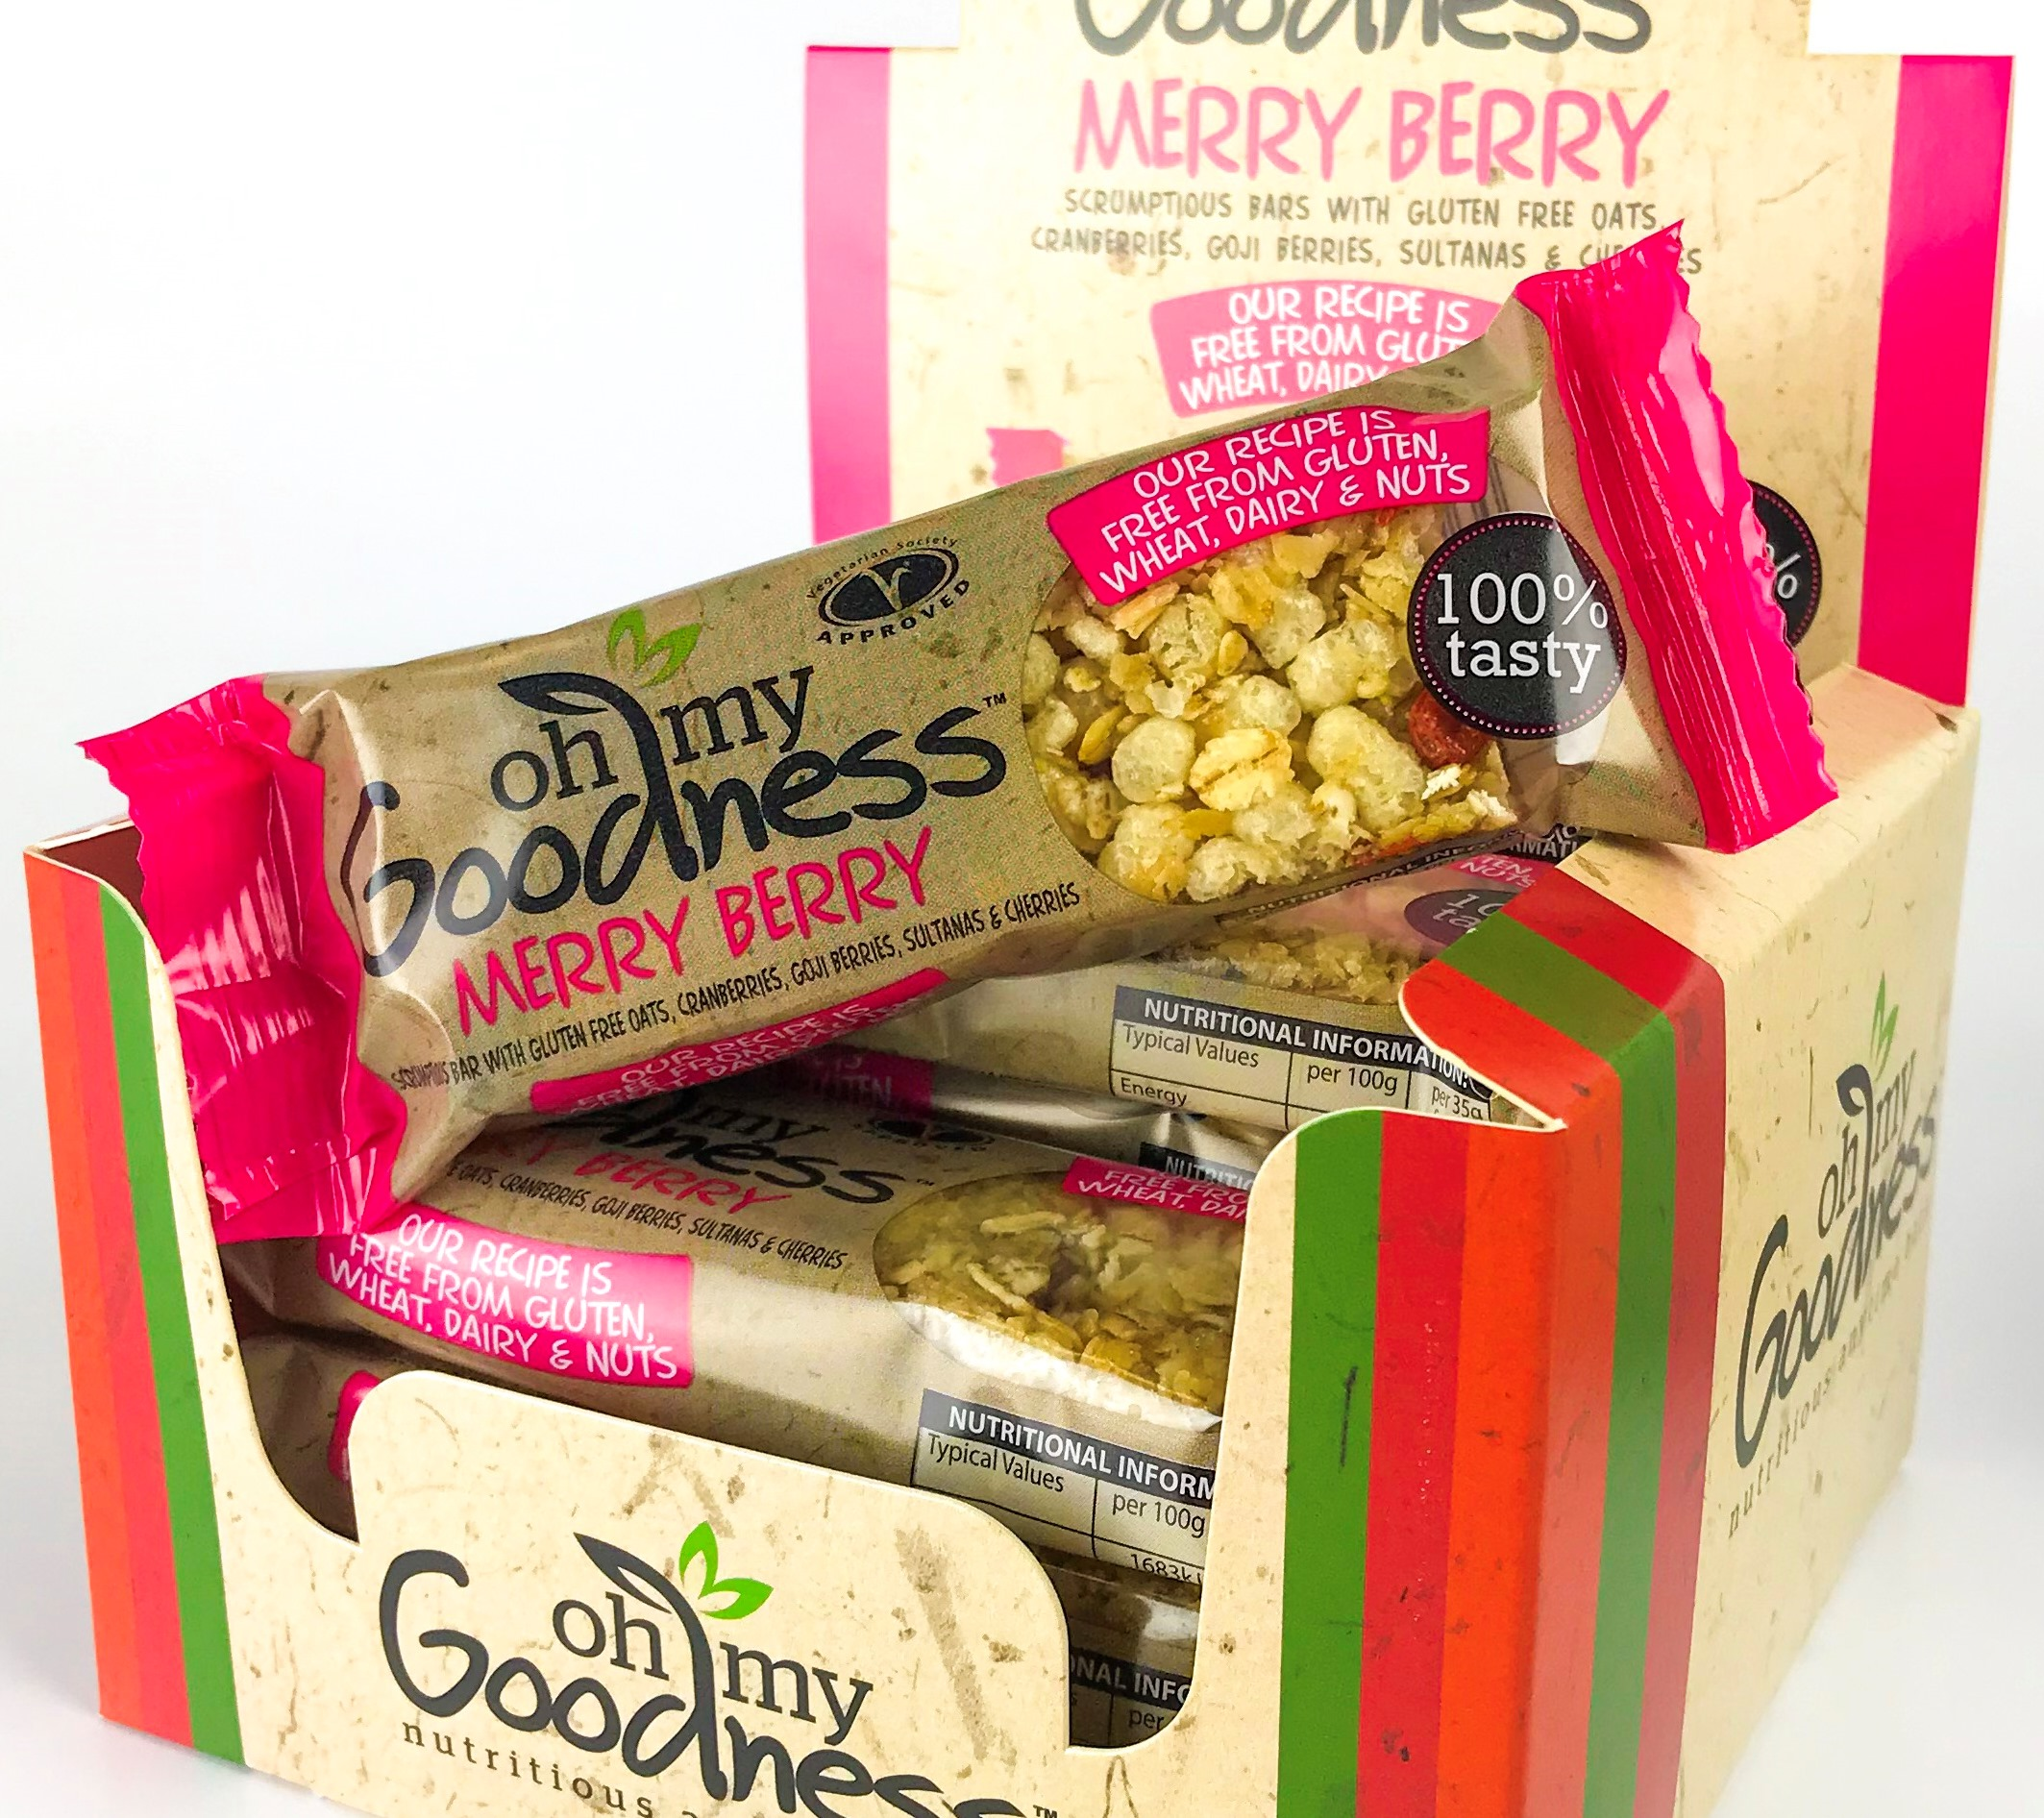 OMG Merry berry Bar in box